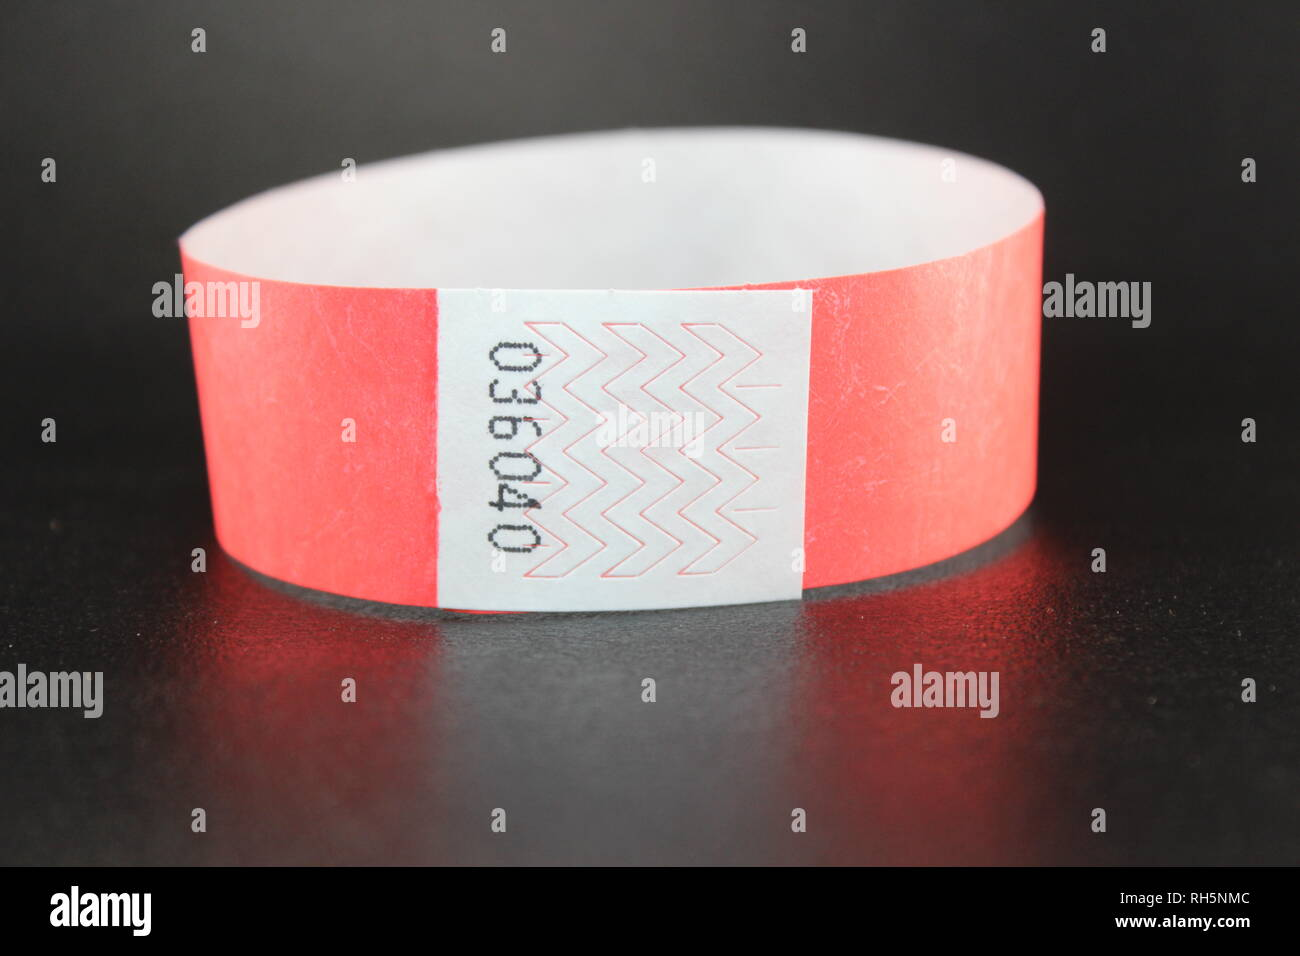 930777a3a119 Colorful Tyvek wristbands for concerts